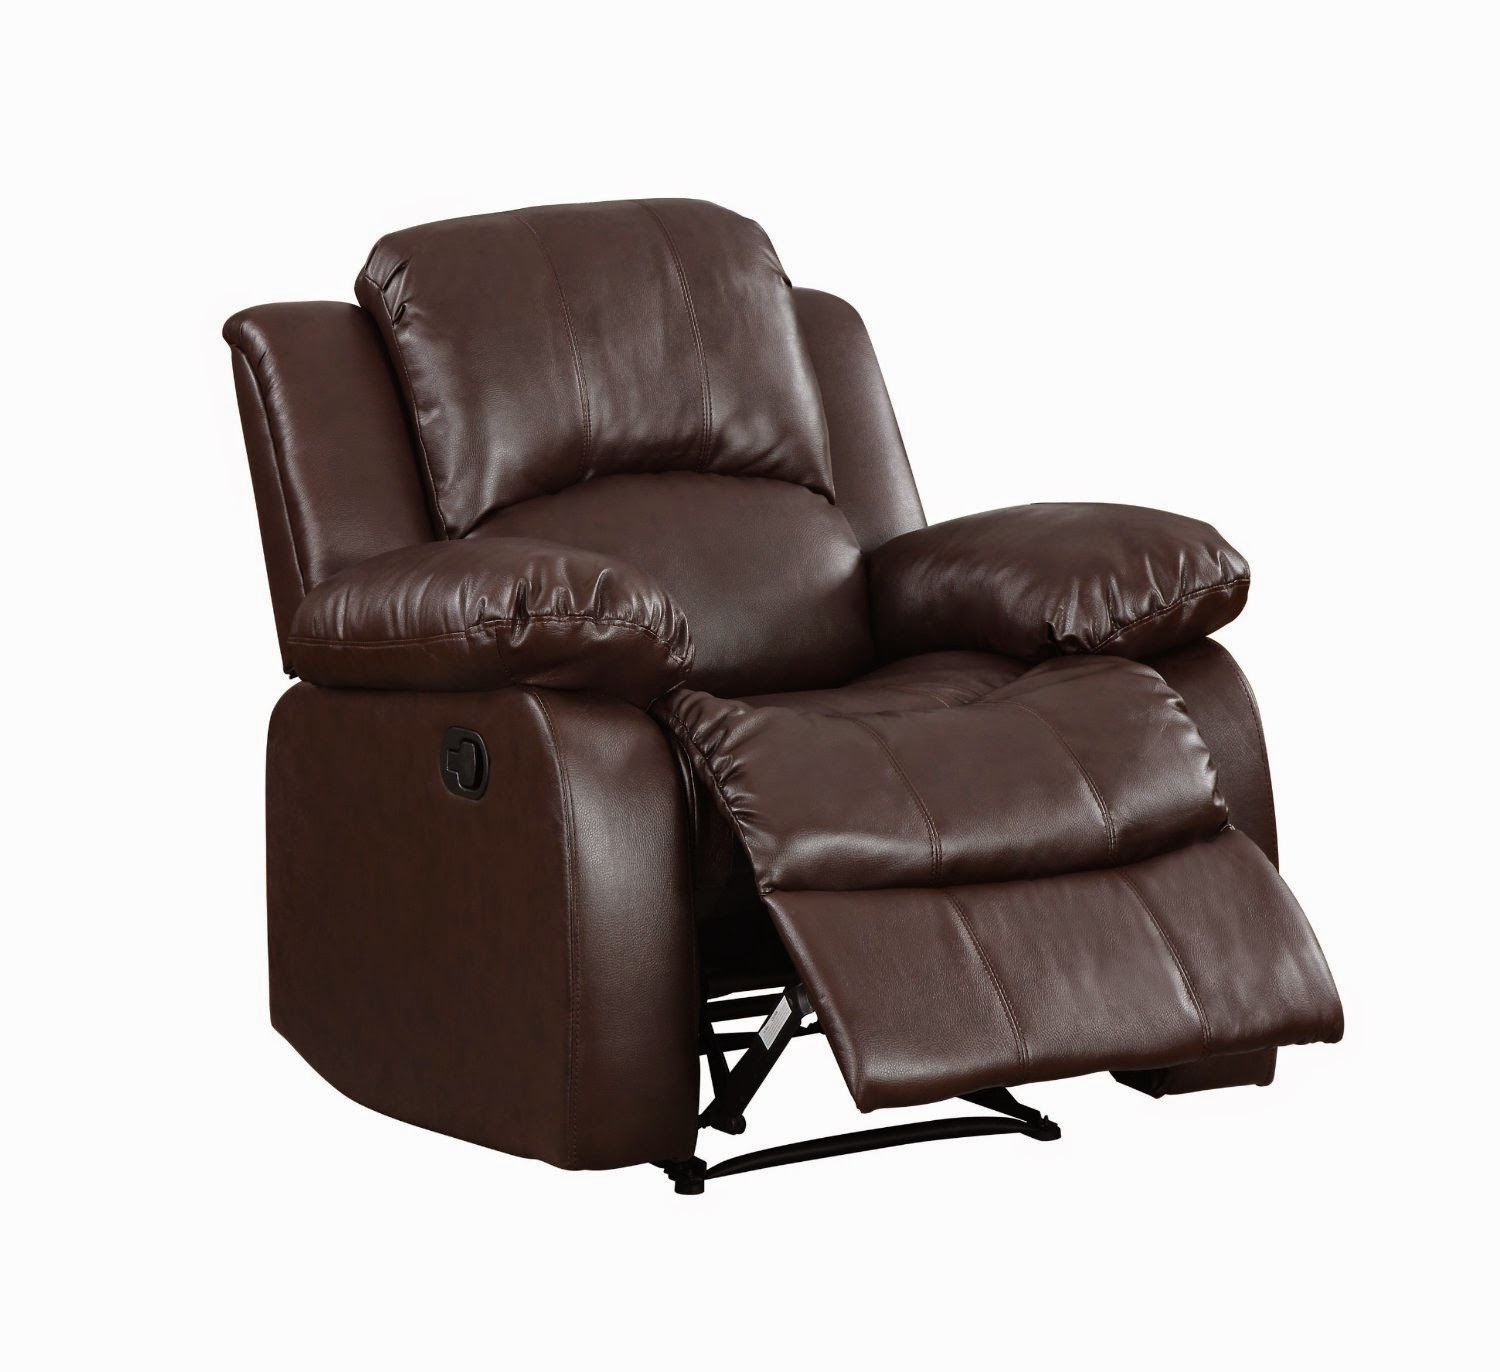 england sleeper sofa reviews ikea rp with chaise cover best leather reclining brands reviews: costco ...